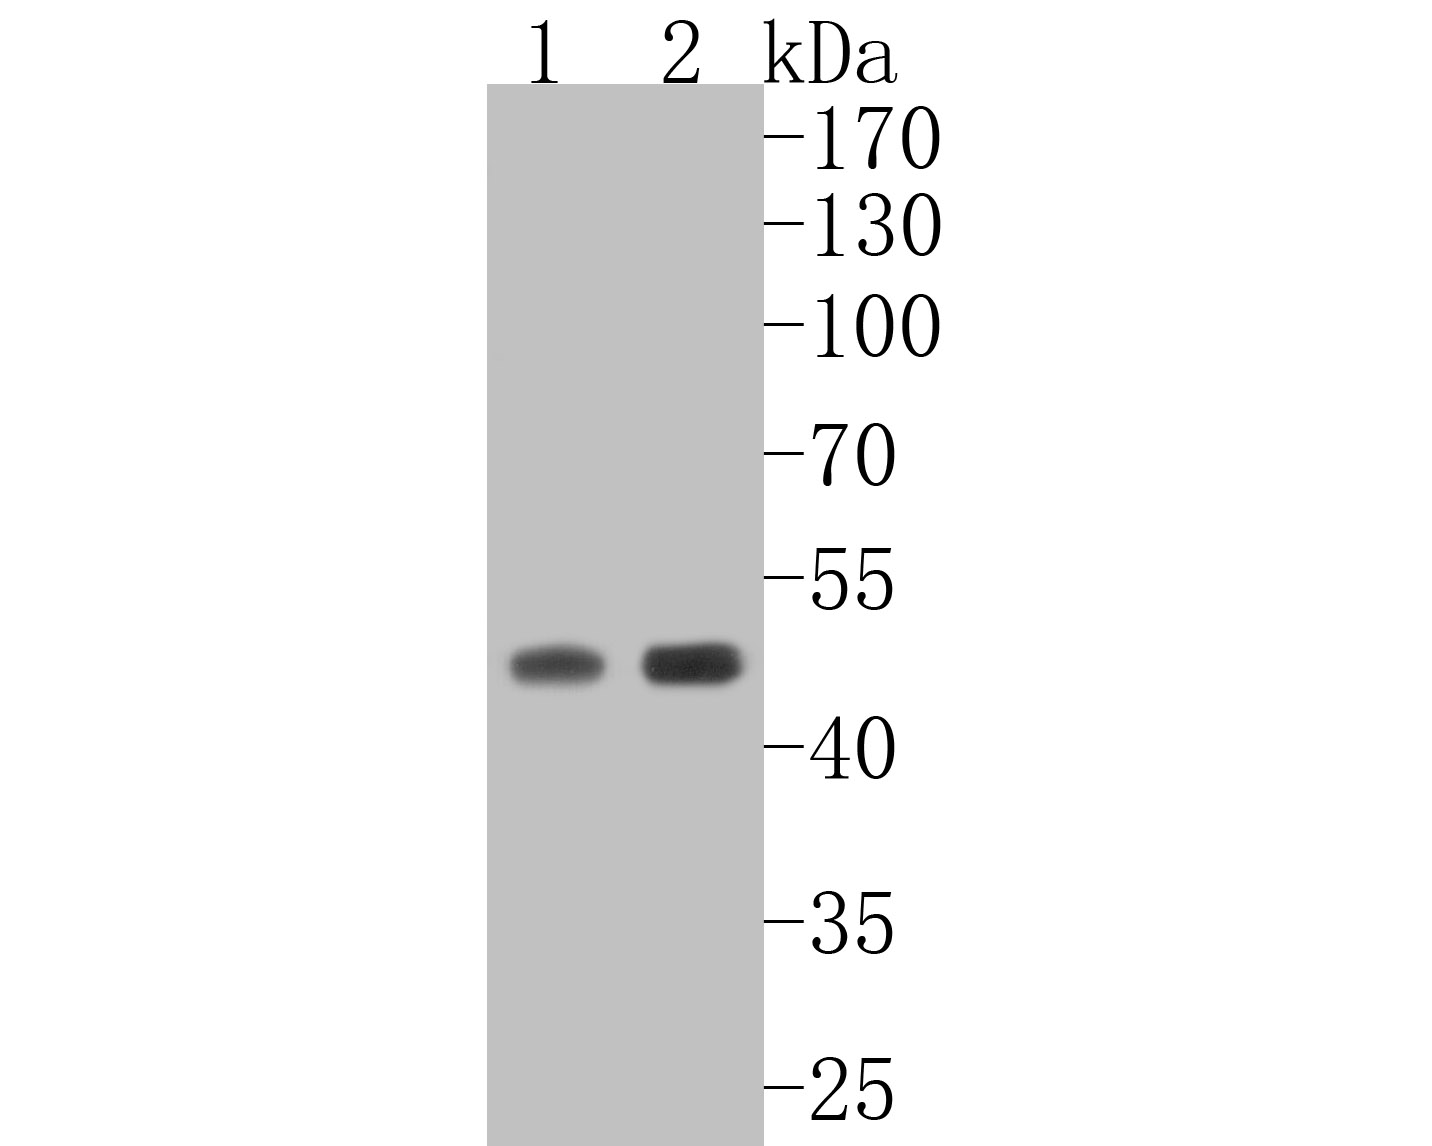 Western blot analysis of Caspase-9 on different lysates. Proteins were transferred to a PVDF membrane and blocked with 5% BSA in PBS for 1 hour at room temperature. The primary antibody (ET1603-27, 1/500) was used in 5% BSA at room temperature for 2 hours. Goat Anti-Rabbit IgG - HRP Secondary Antibody (HA1001) at 1:5,000 dilution was used for 1 hour at room temperature.<br /> Positive control: <br /> Lane 1: C2C12 cell lysate<br /> Lane 2: Hela cell lysate